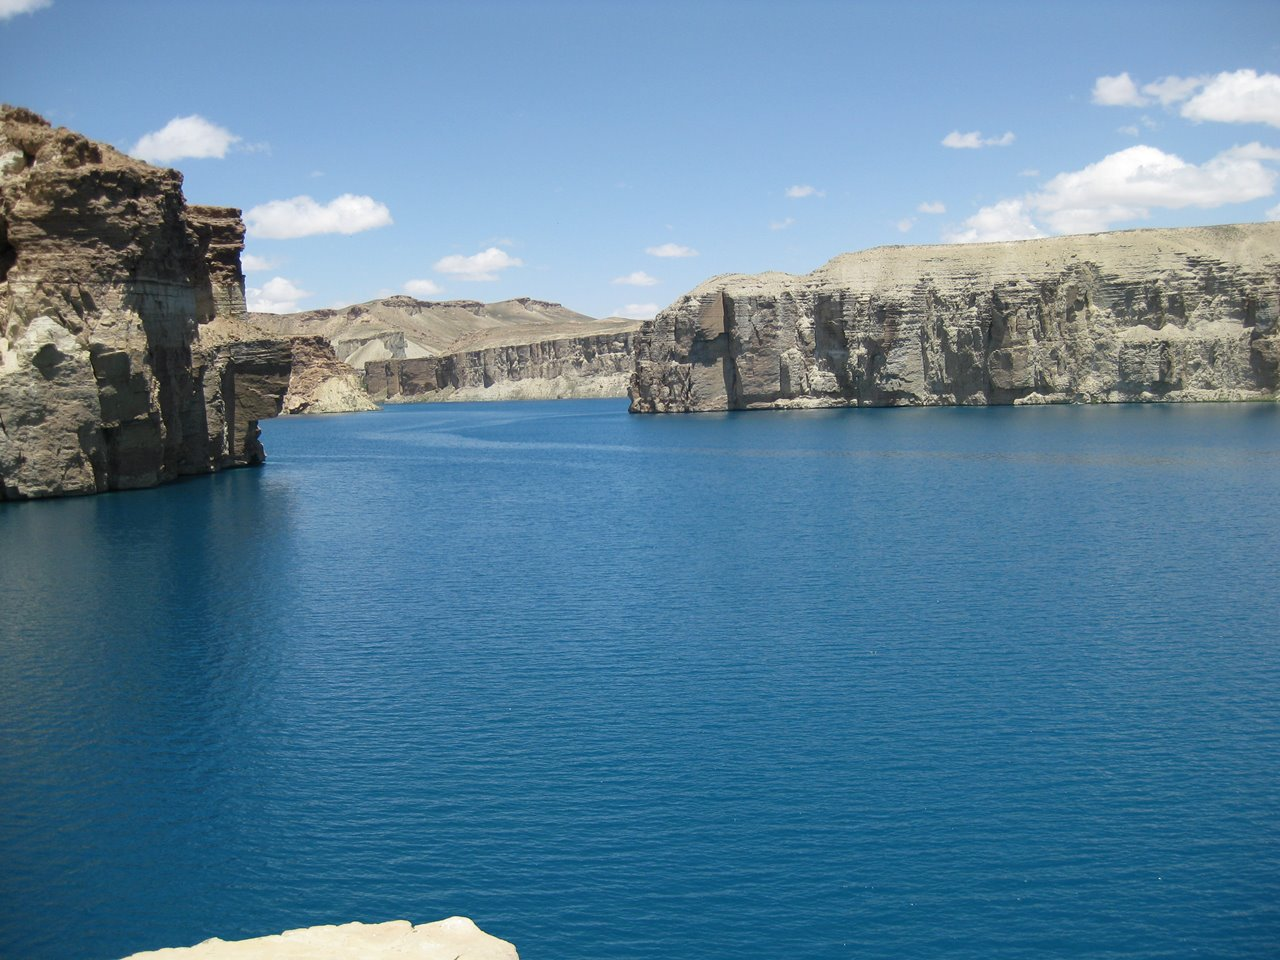 381911,xcitefun-band-e-amir-national-park-6